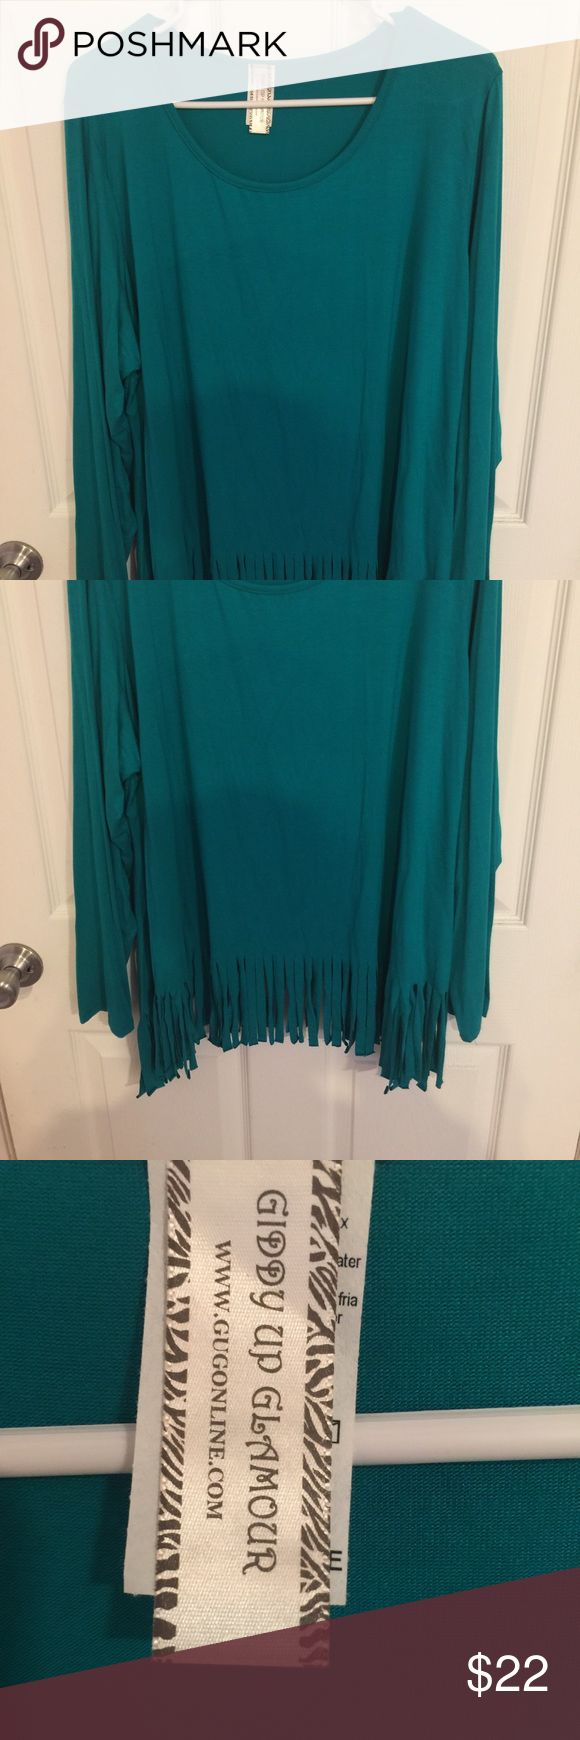 """BNWT!! Turquoise Fringe Top!! BNWT!!! Beautiful Turquoise color!  Stylish fringe detailing at the bottom.  Ordered from the online boutique """"Giddy up Glamour"""".  Size 3X, which is a 16-18 at their boutique! Giddy Up Glamour  Tops Tunics"""